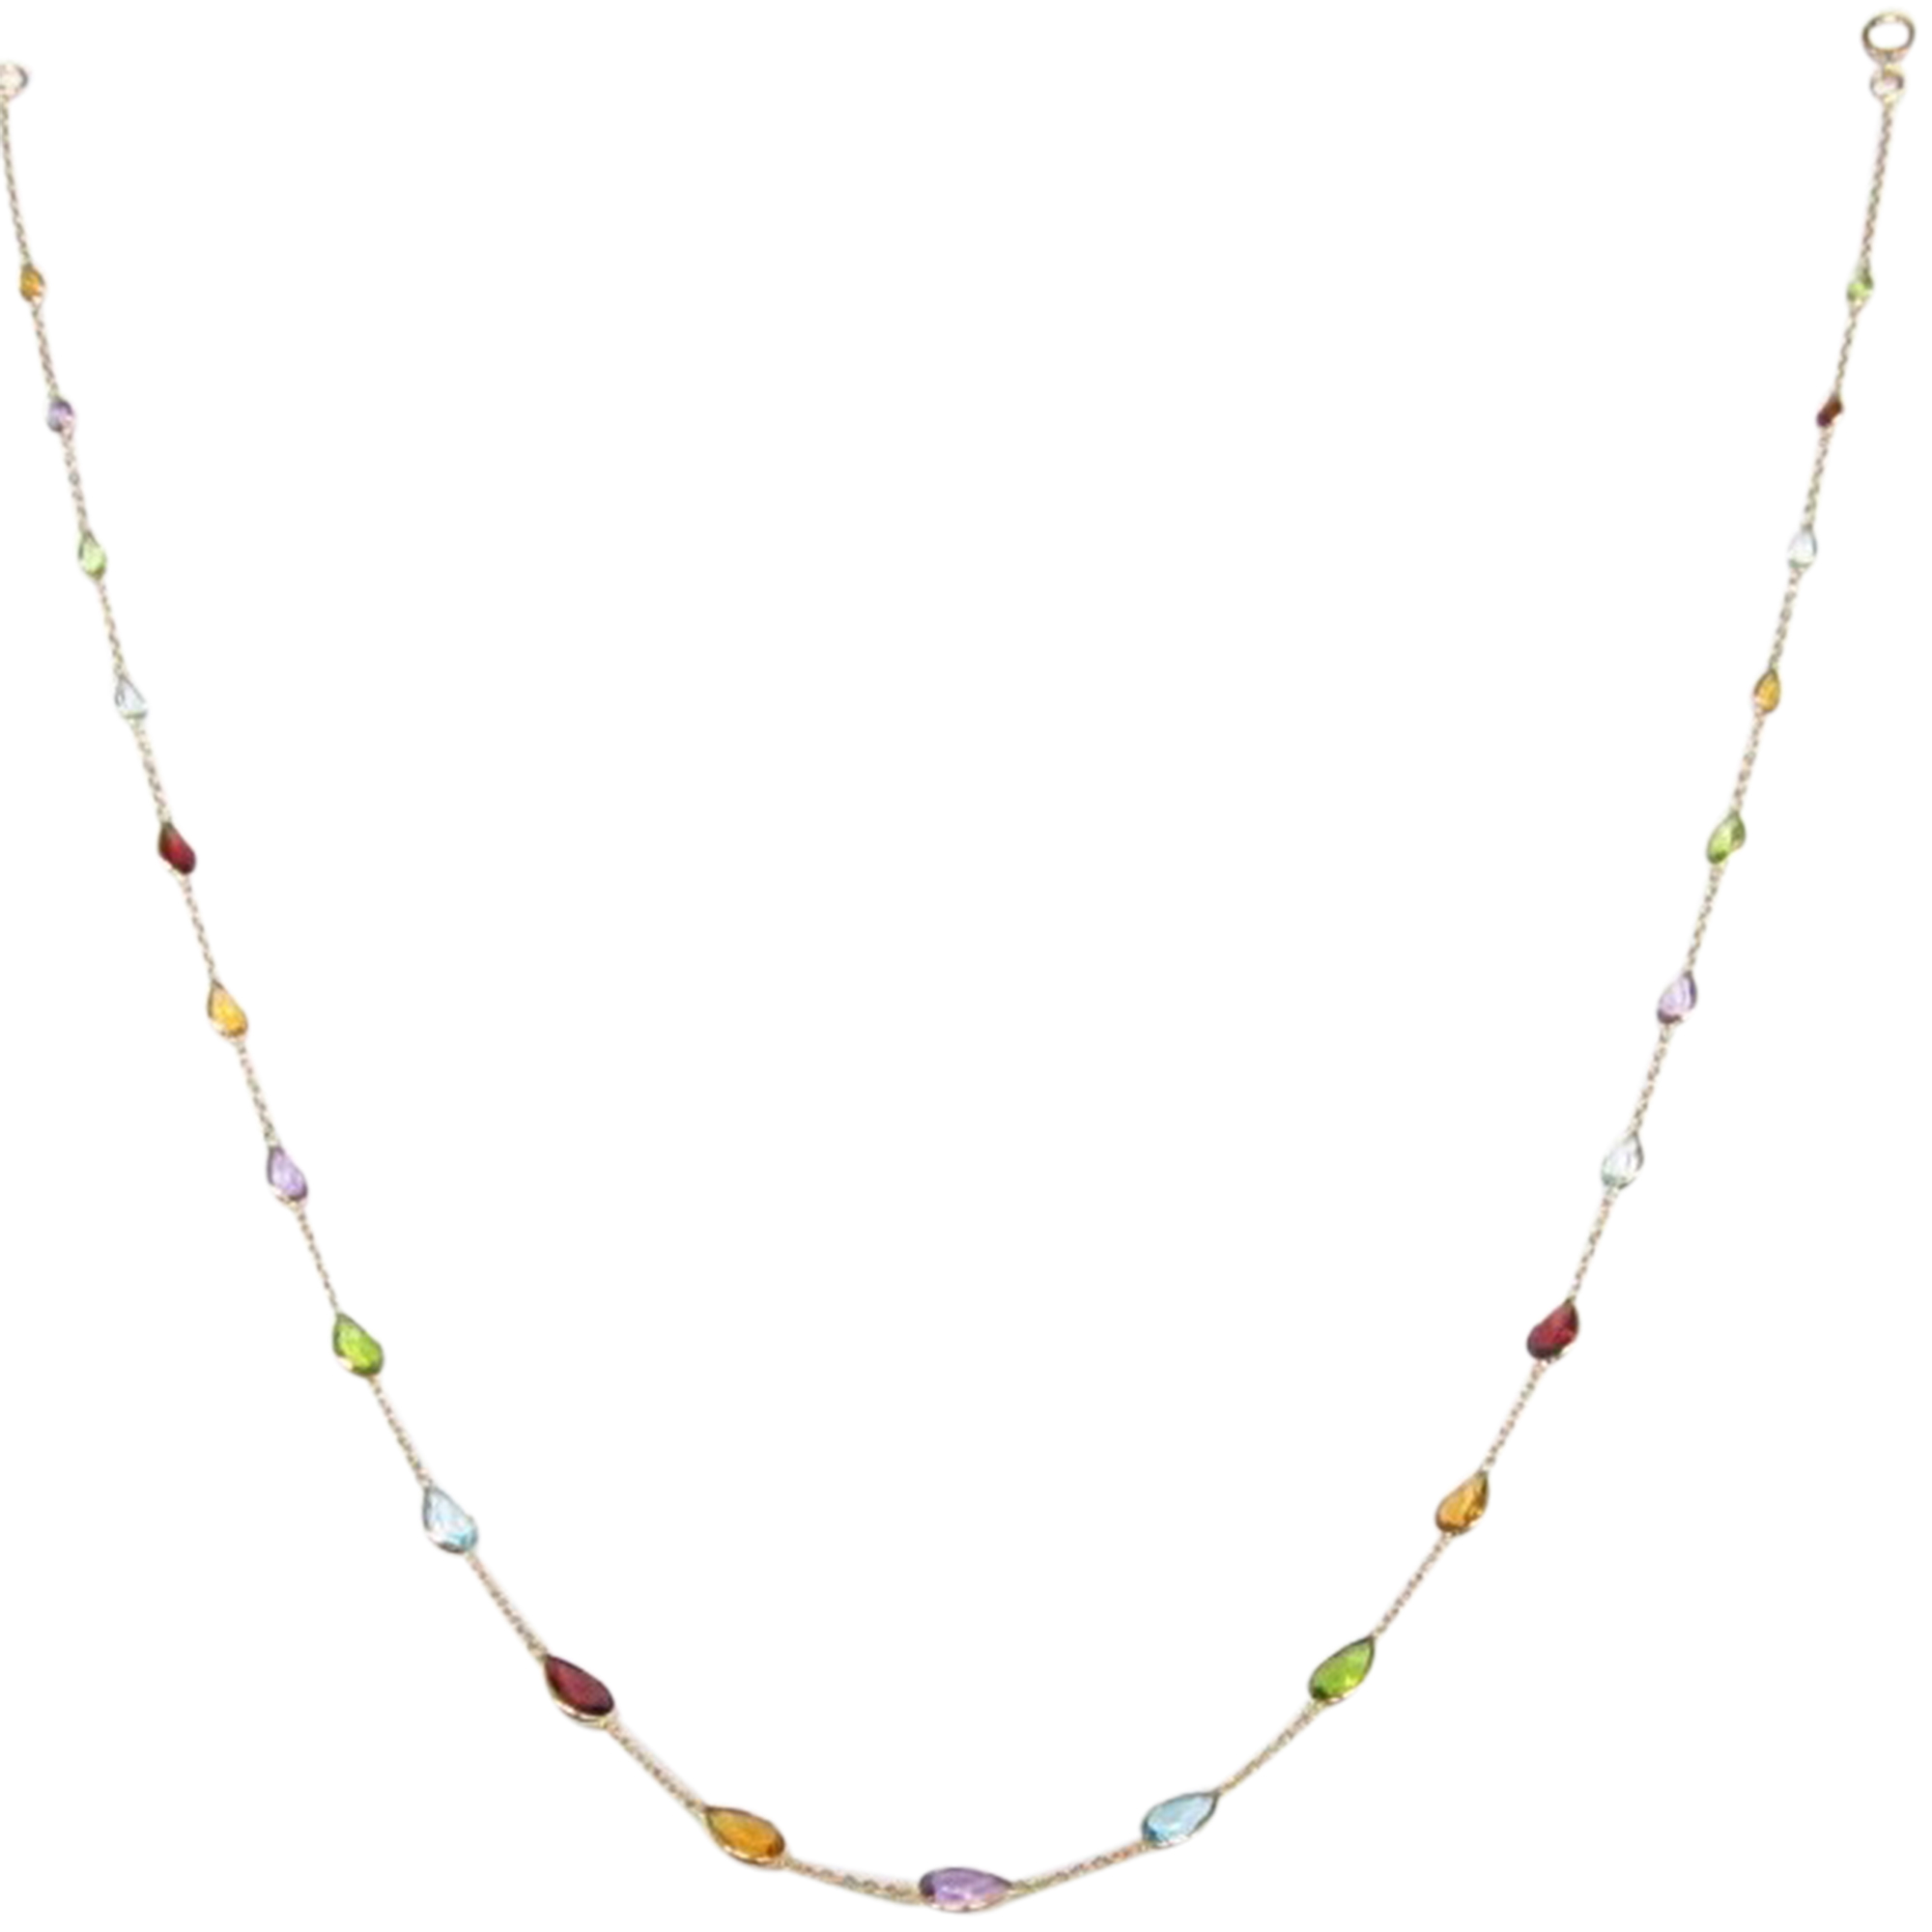 18ct Yellow Gold Pear Cut Multi Gem Necklace